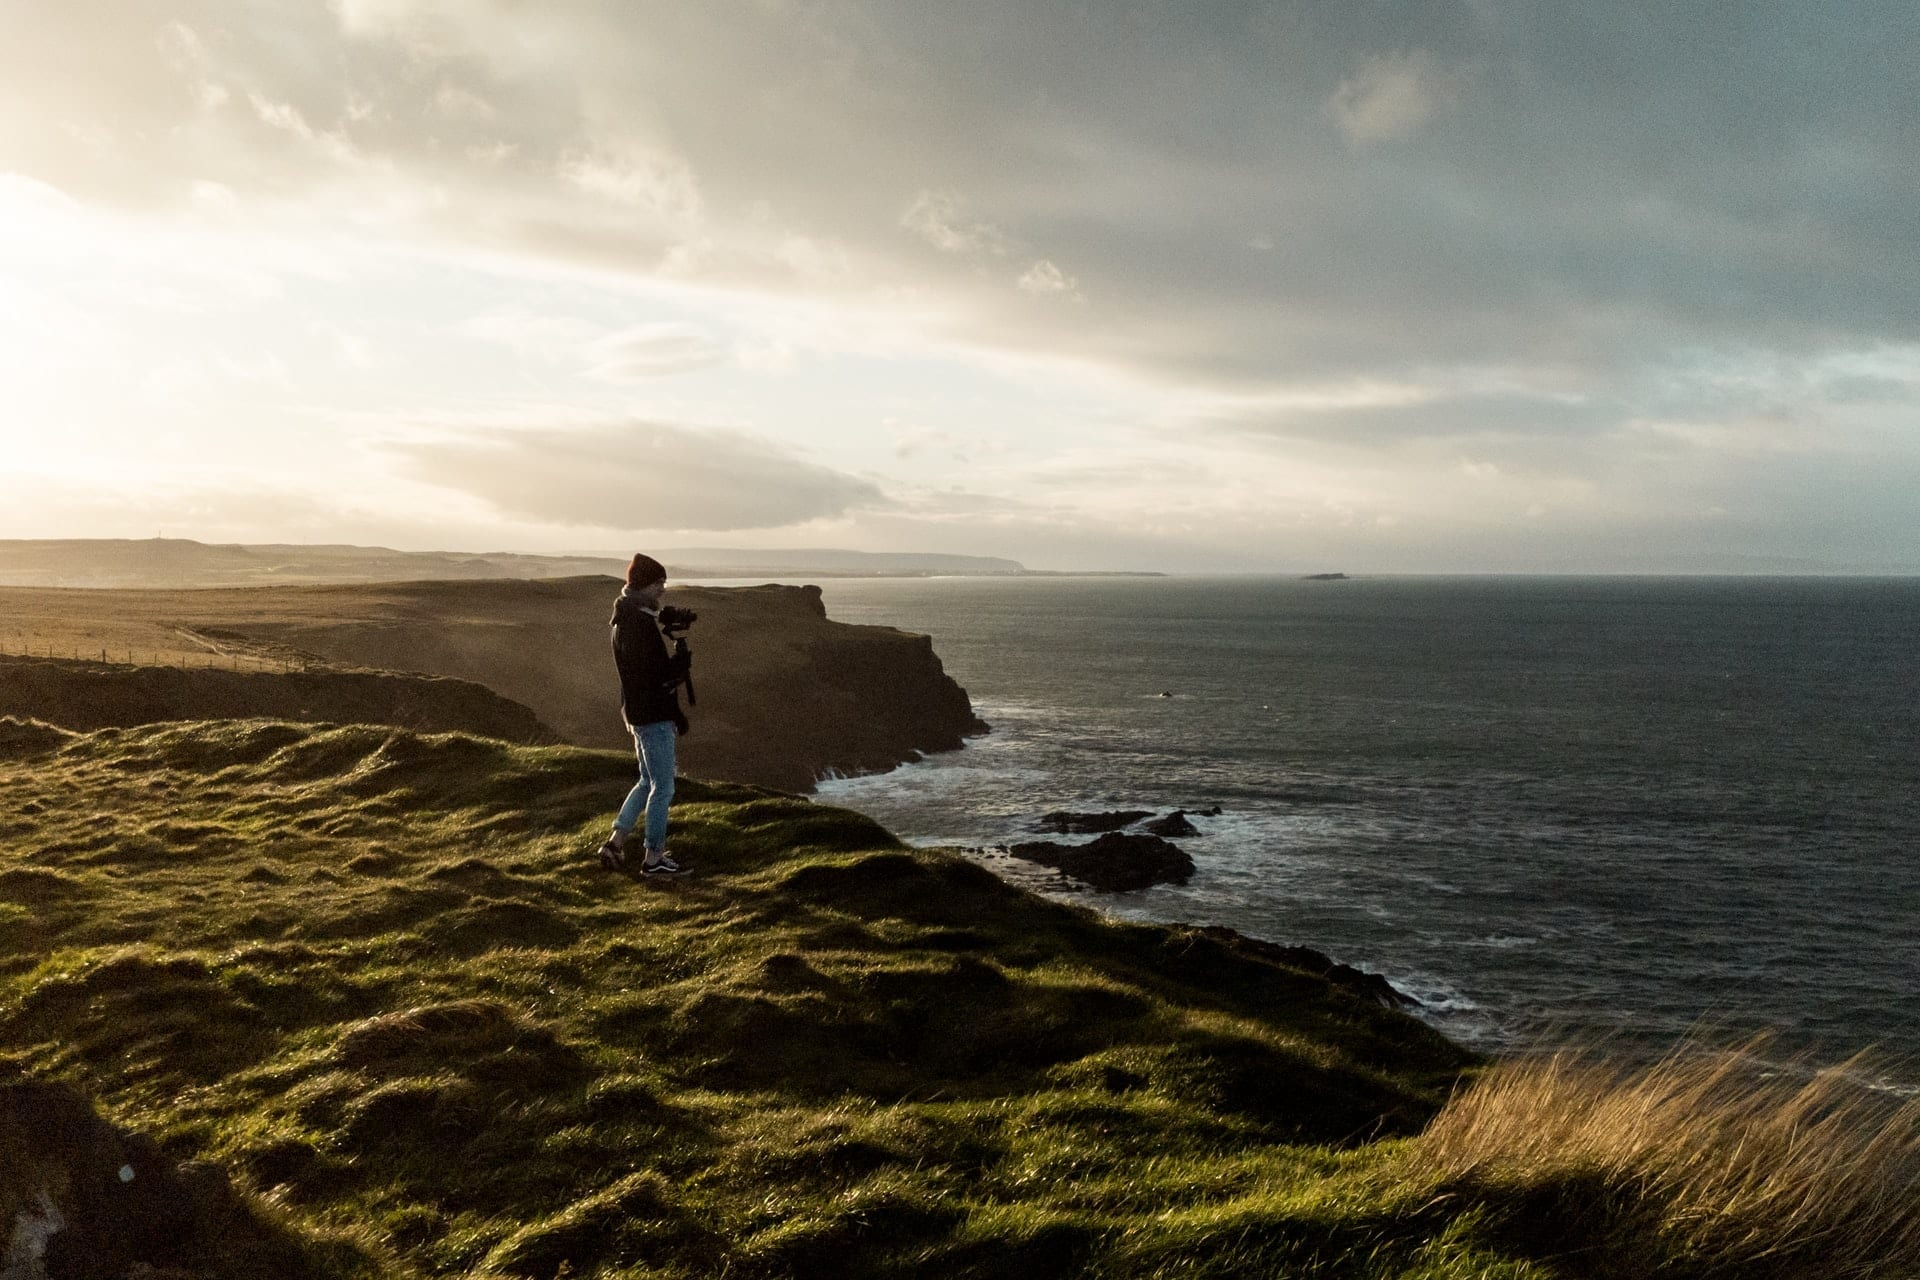 man-holding-camera-walking-along-cliff-by-coast-at-sunset-coastal-causeway-route-northern-ireland